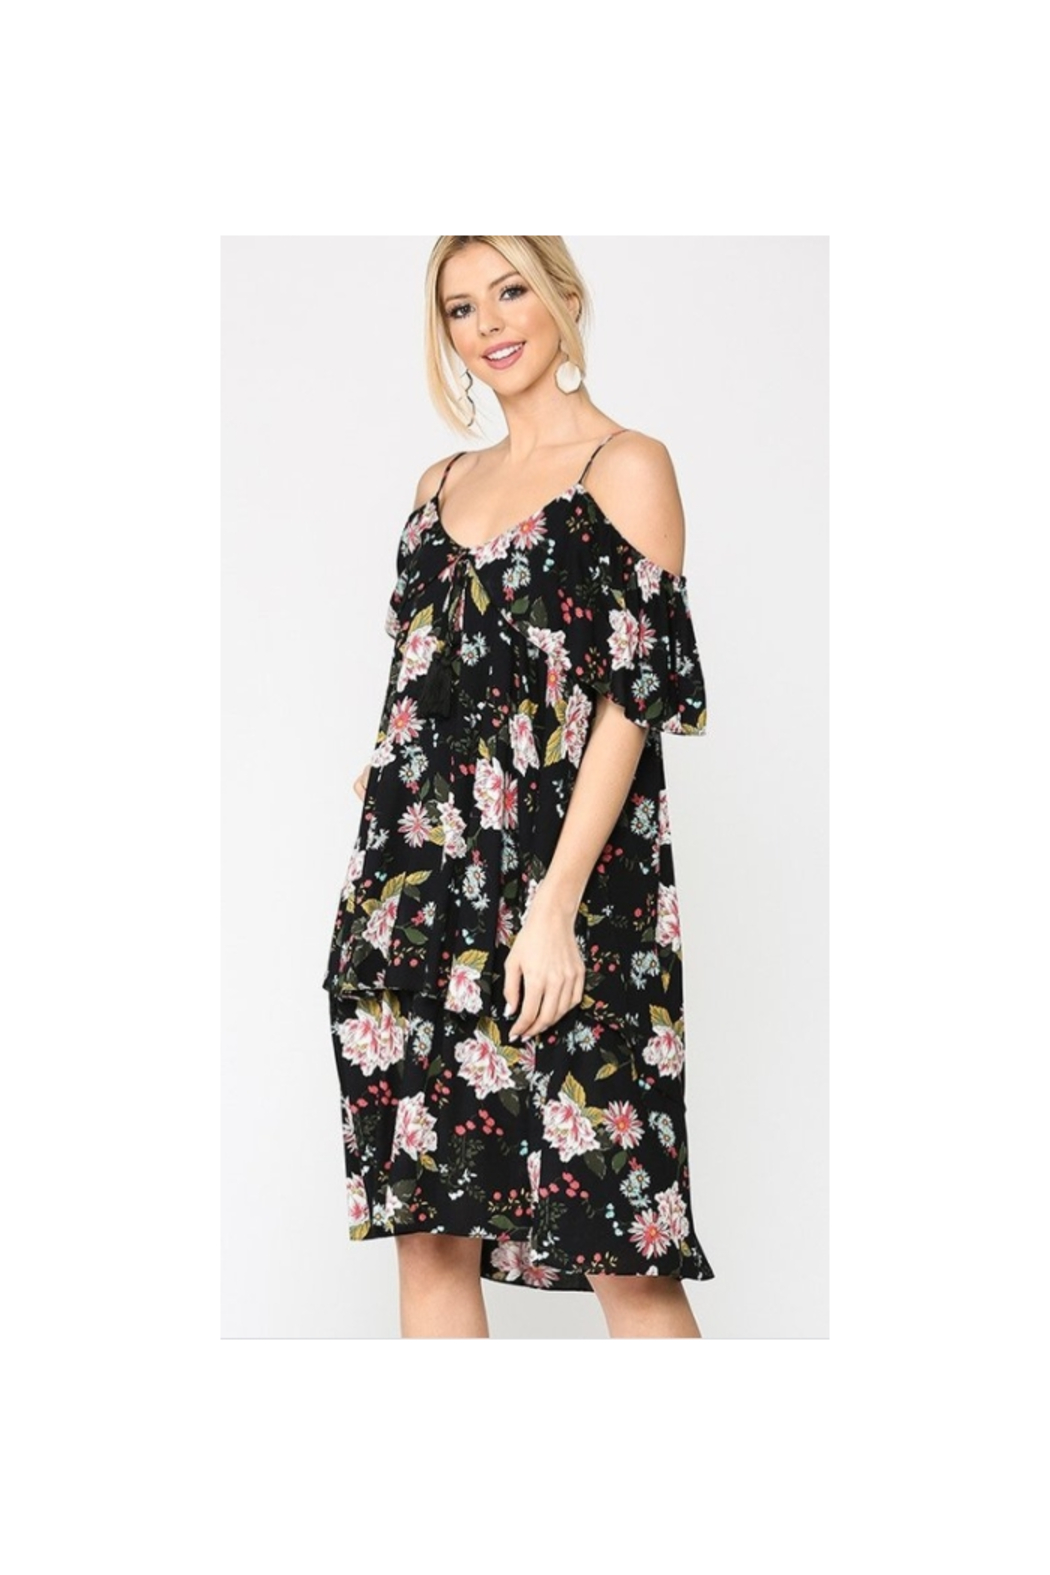 GiGiO Floral Cold Shoulder Ruffle Layered Dress - Main Image